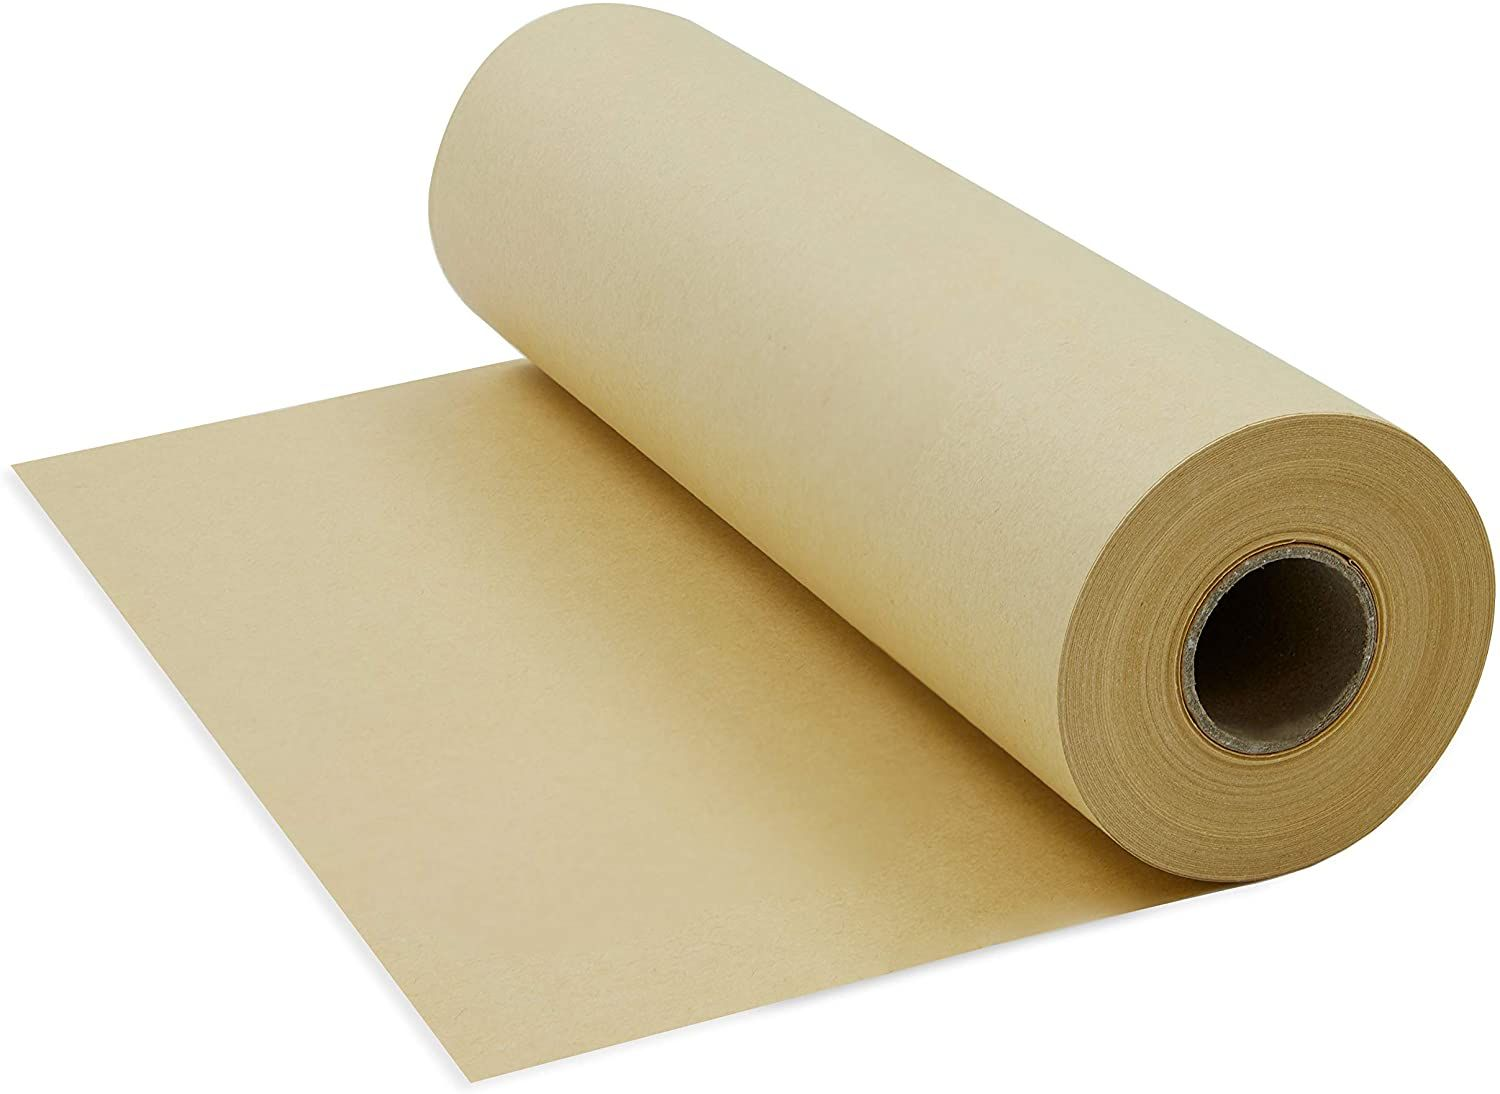 Kraft Paper Roll 10 X 1200 100 Ft Large Brown Paper Roll Ideal For Gift Wrapping Packing In 2020 Brown Paper Roll Paper Crafts Kraft Paper